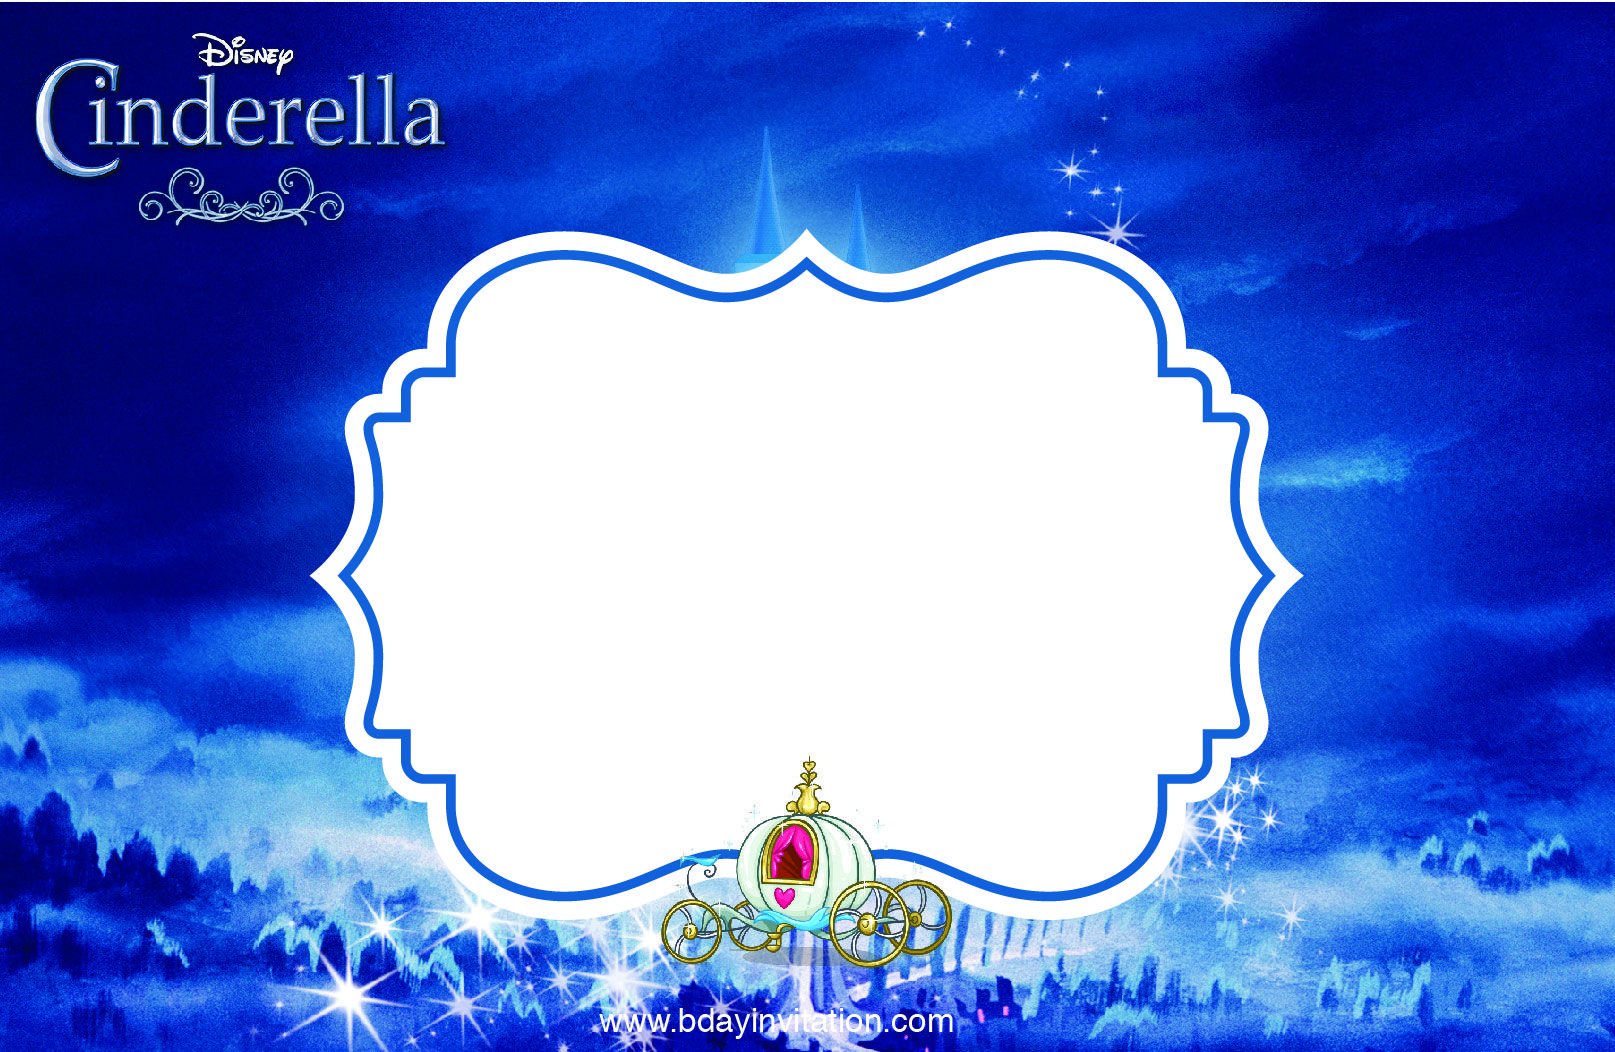 Awesome FREE Printable Disney Cinderella Party Invitation Template